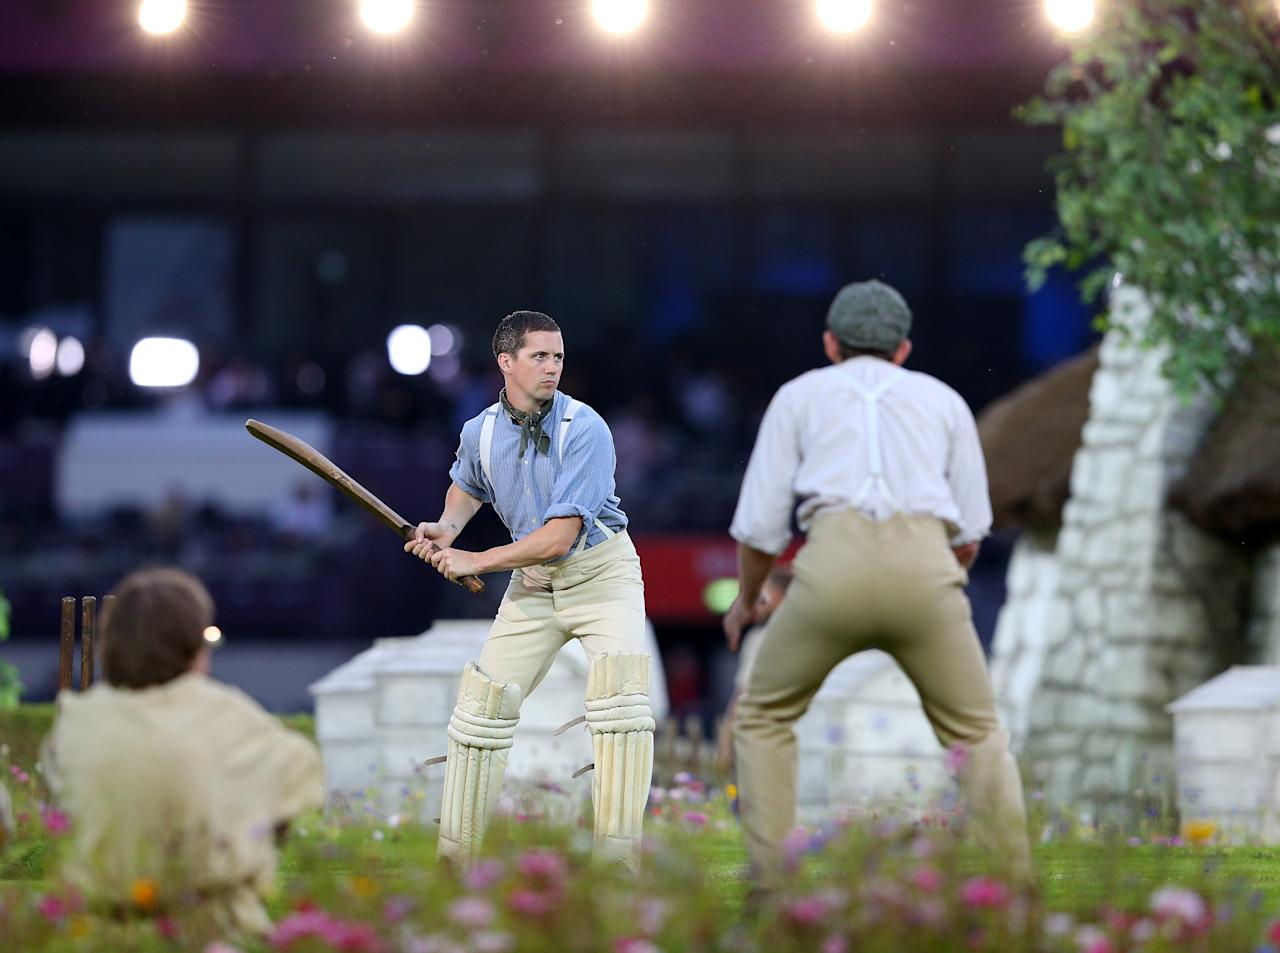 LONDON, ENGLAND - JULY 27:  Performers depict a view of the English countryside by playing a game of cricket during the Opening Ceremony of the London 2012 Olympic Games at the Olympic Stadium on July 27, 2012 in London, England.  (Photo by Cameron Spencer/Getty Images)